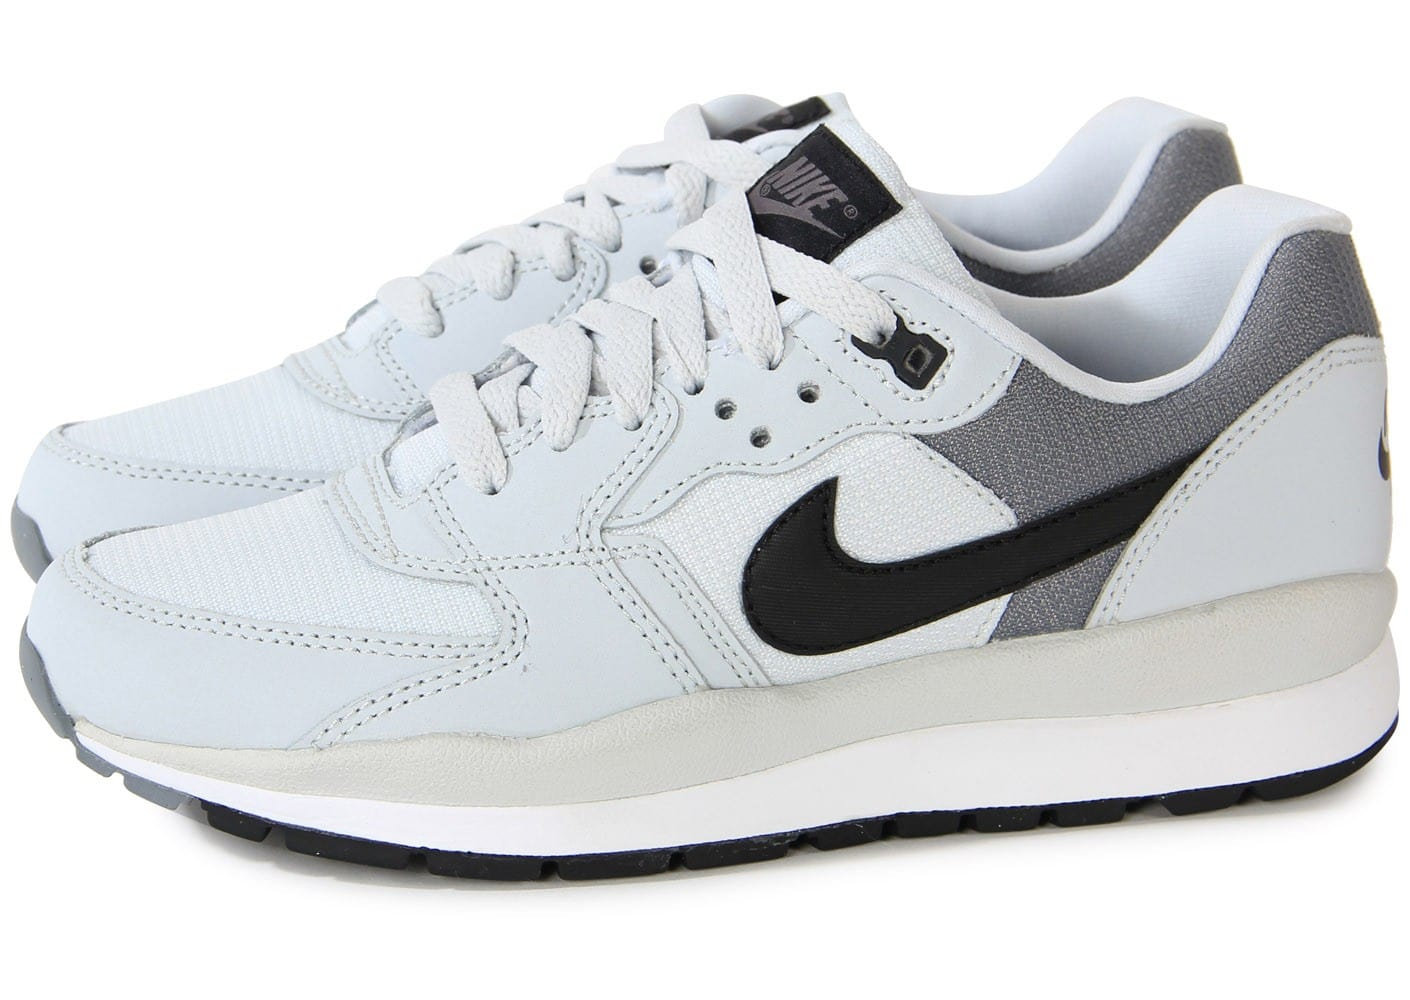 huge discount ad355 a4eaa Cliquez pour zoomer Chaussures Nike Windrunner Grise vue extérieure ...